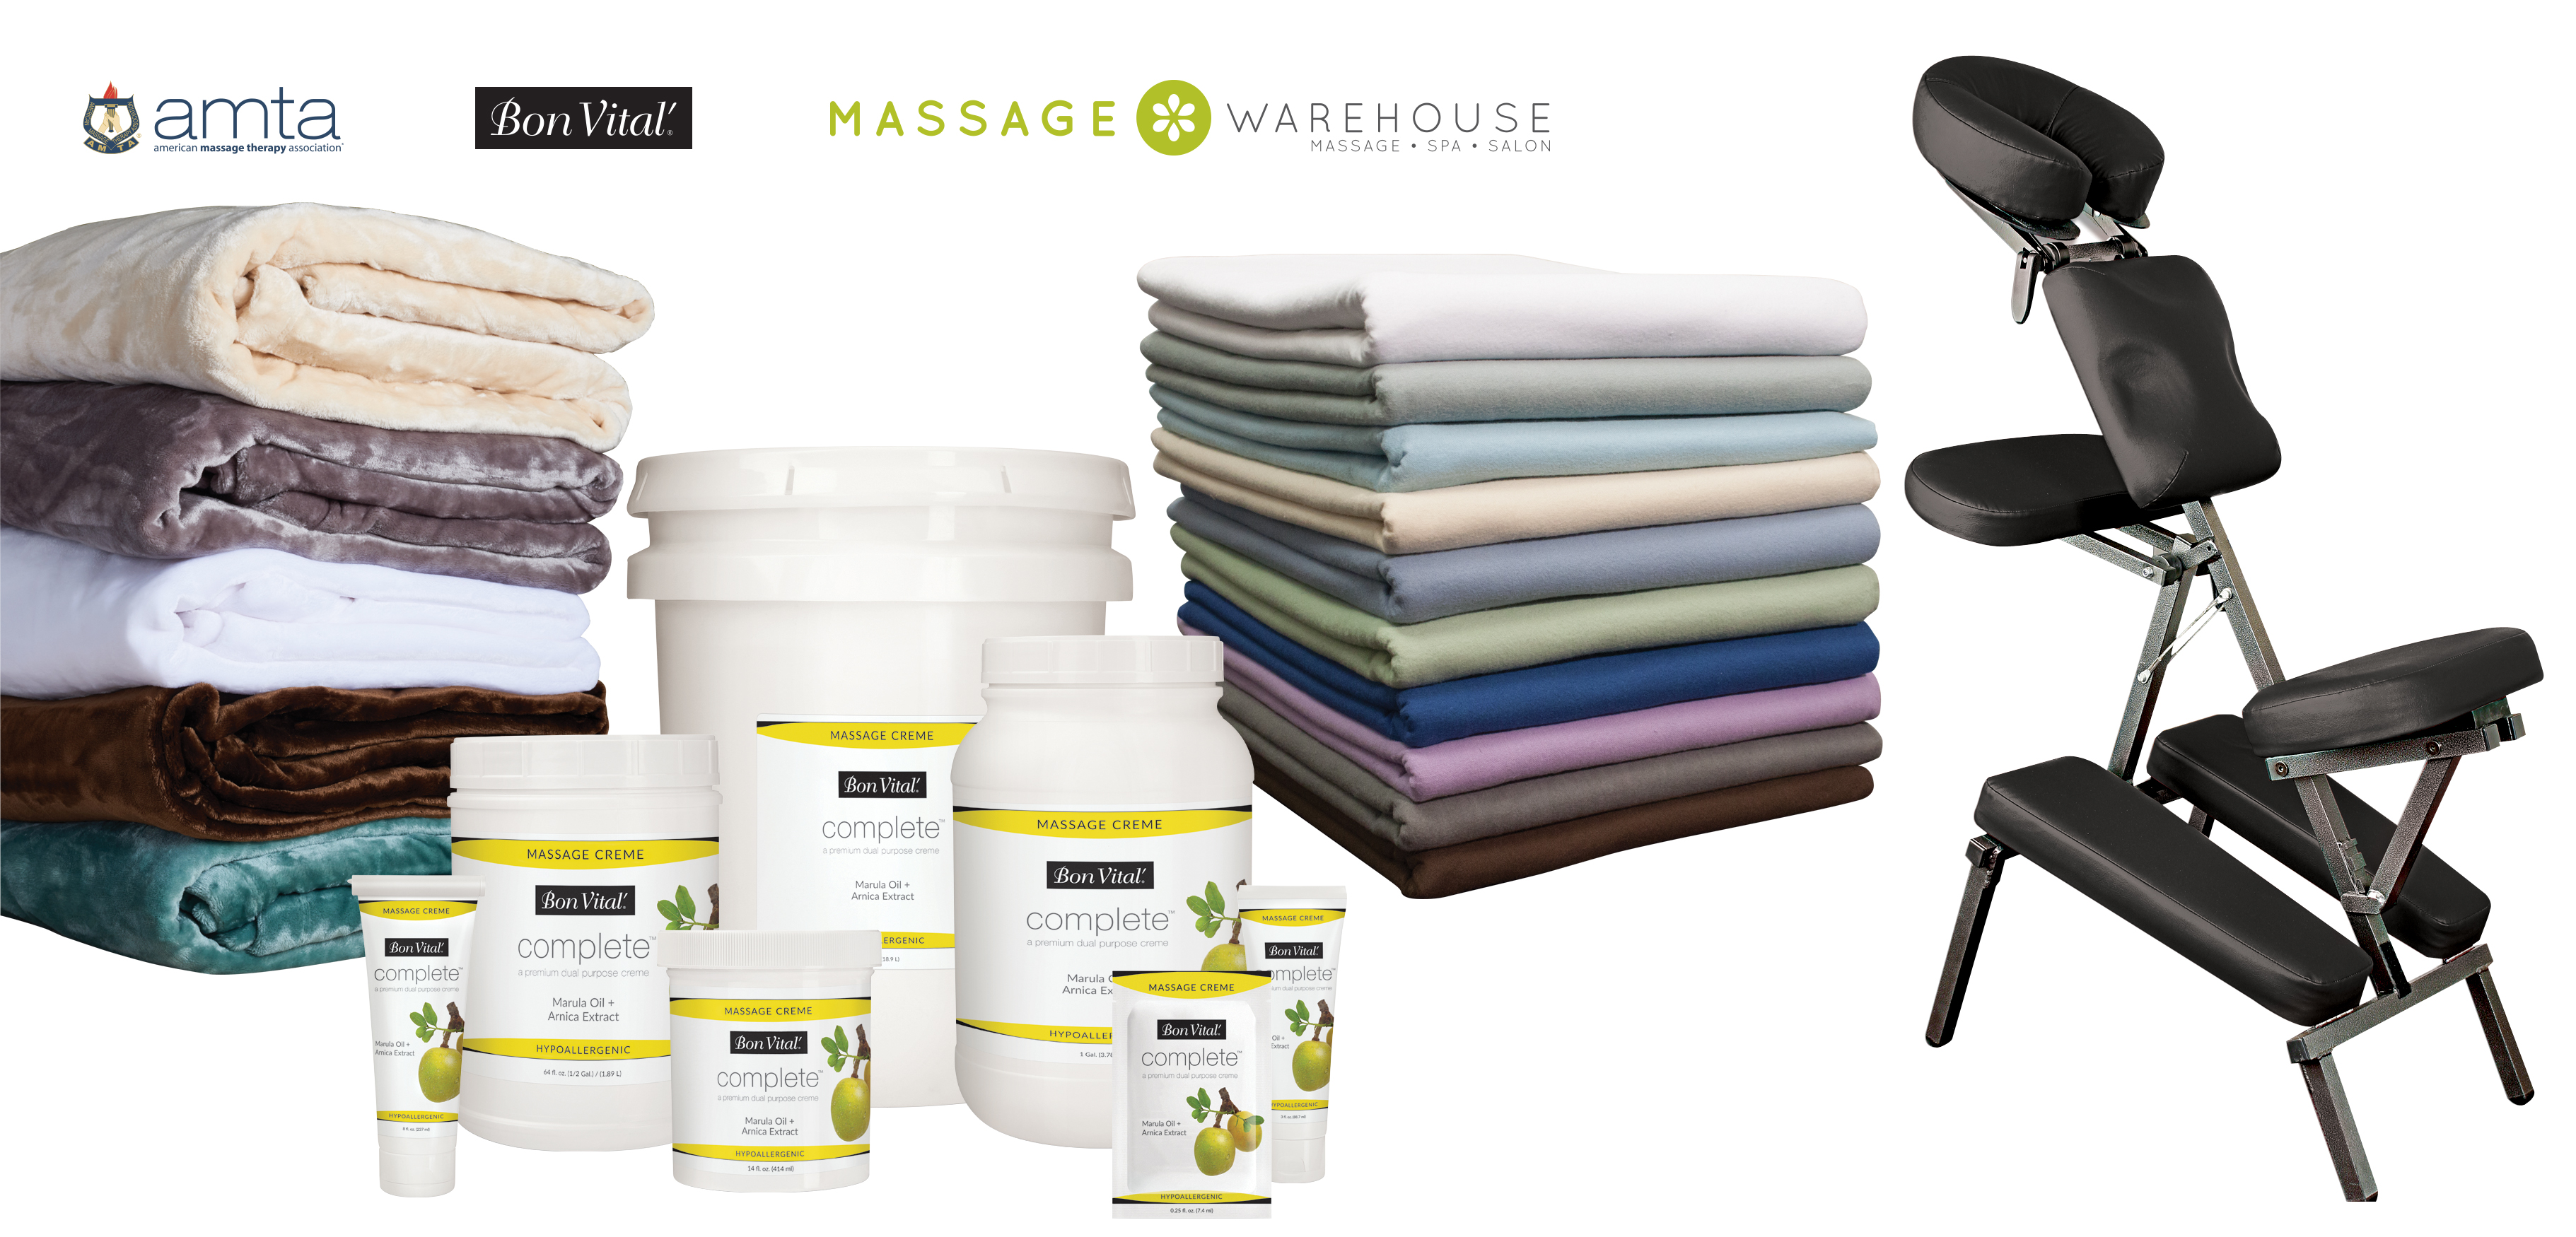 Massage Warehouse sells everything needed by massage therapists to successfully serve their clients. You can shop for supplies such as oils and lotions, equipment such as massage tables and chairs and massage tools, aromatherapy, treatment supplies, esthetic supplies and décor to improve your office's professional, relaxing ambiance.